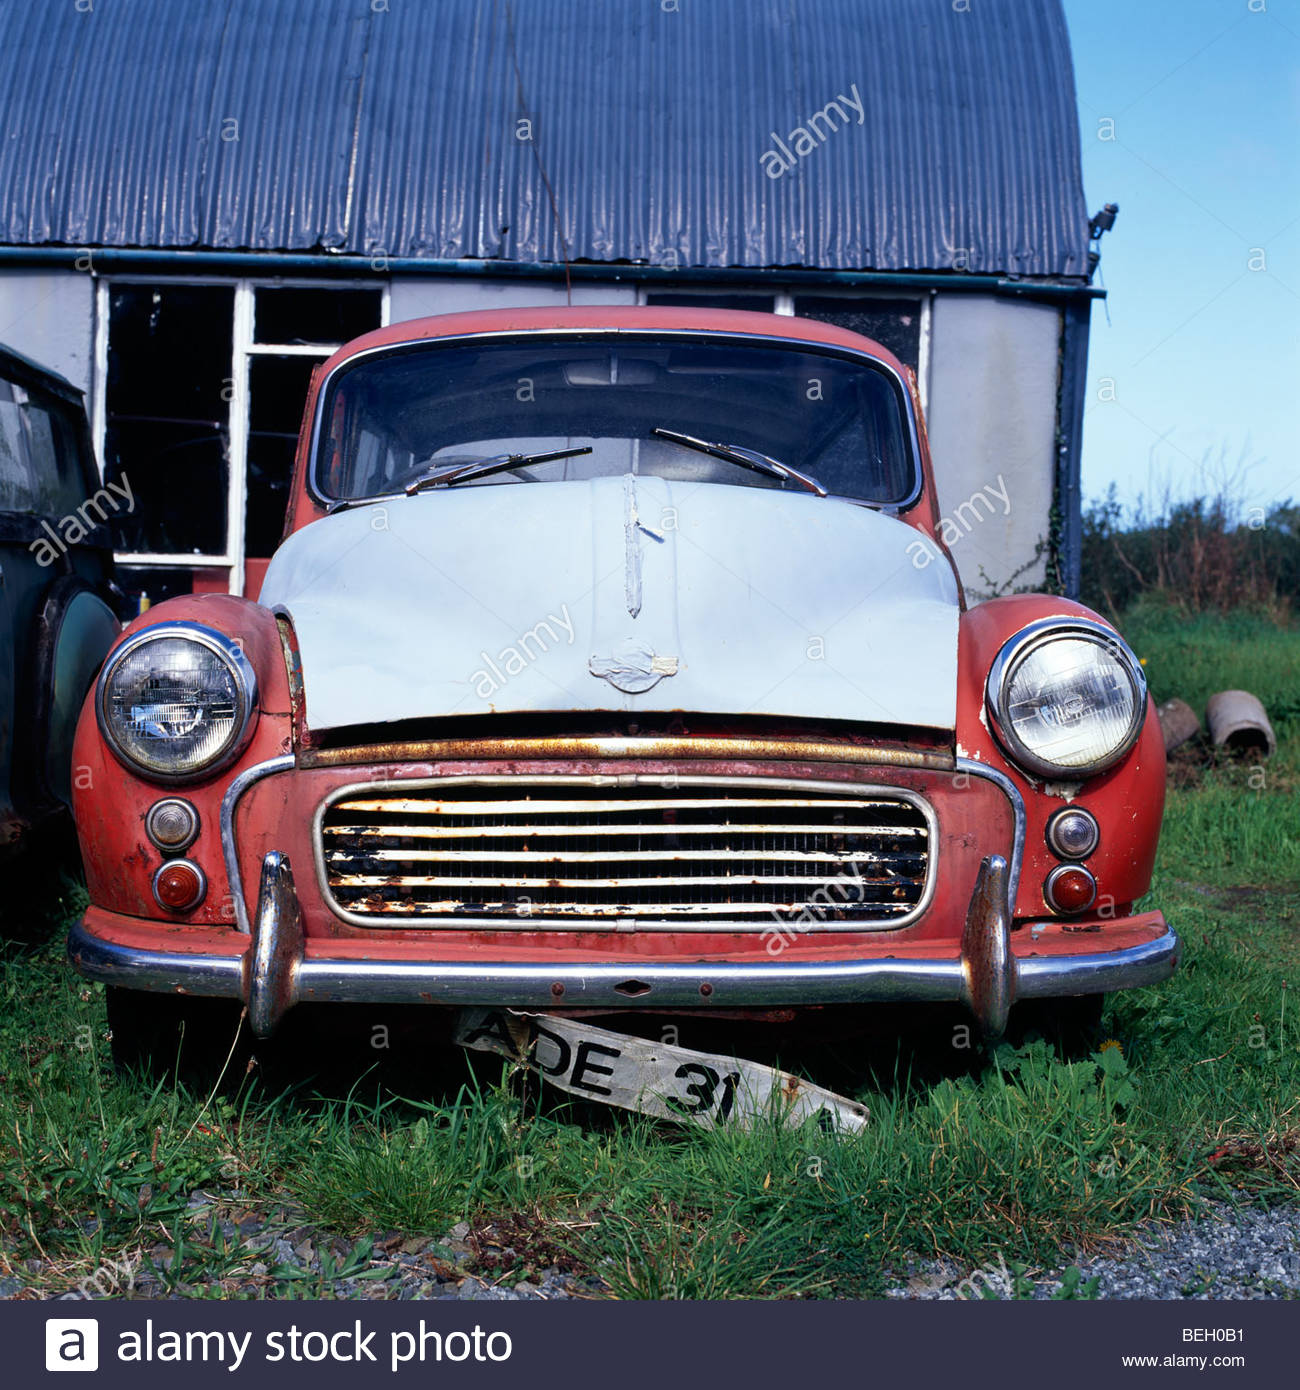 A Morris Minor car that has seen better days in Pontiago, Pembrokeshire, Wales, UK. - Stock Image